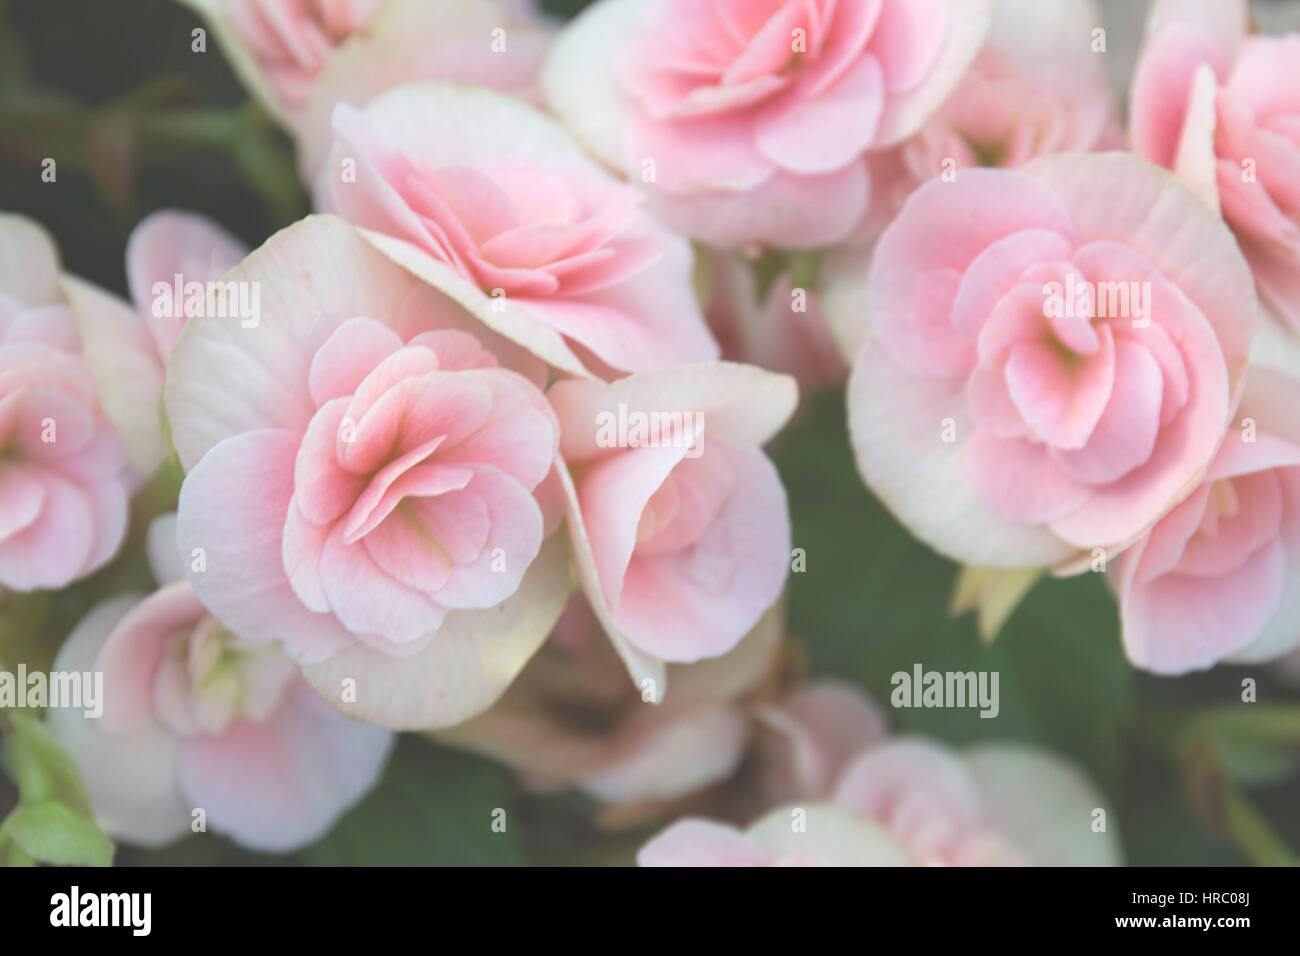 Pink and white begonia stock photos pink and white begonia stock spring floral background light pink begonia flower bouquet close up selective focus soft focus blurred flowers mightylinksfo